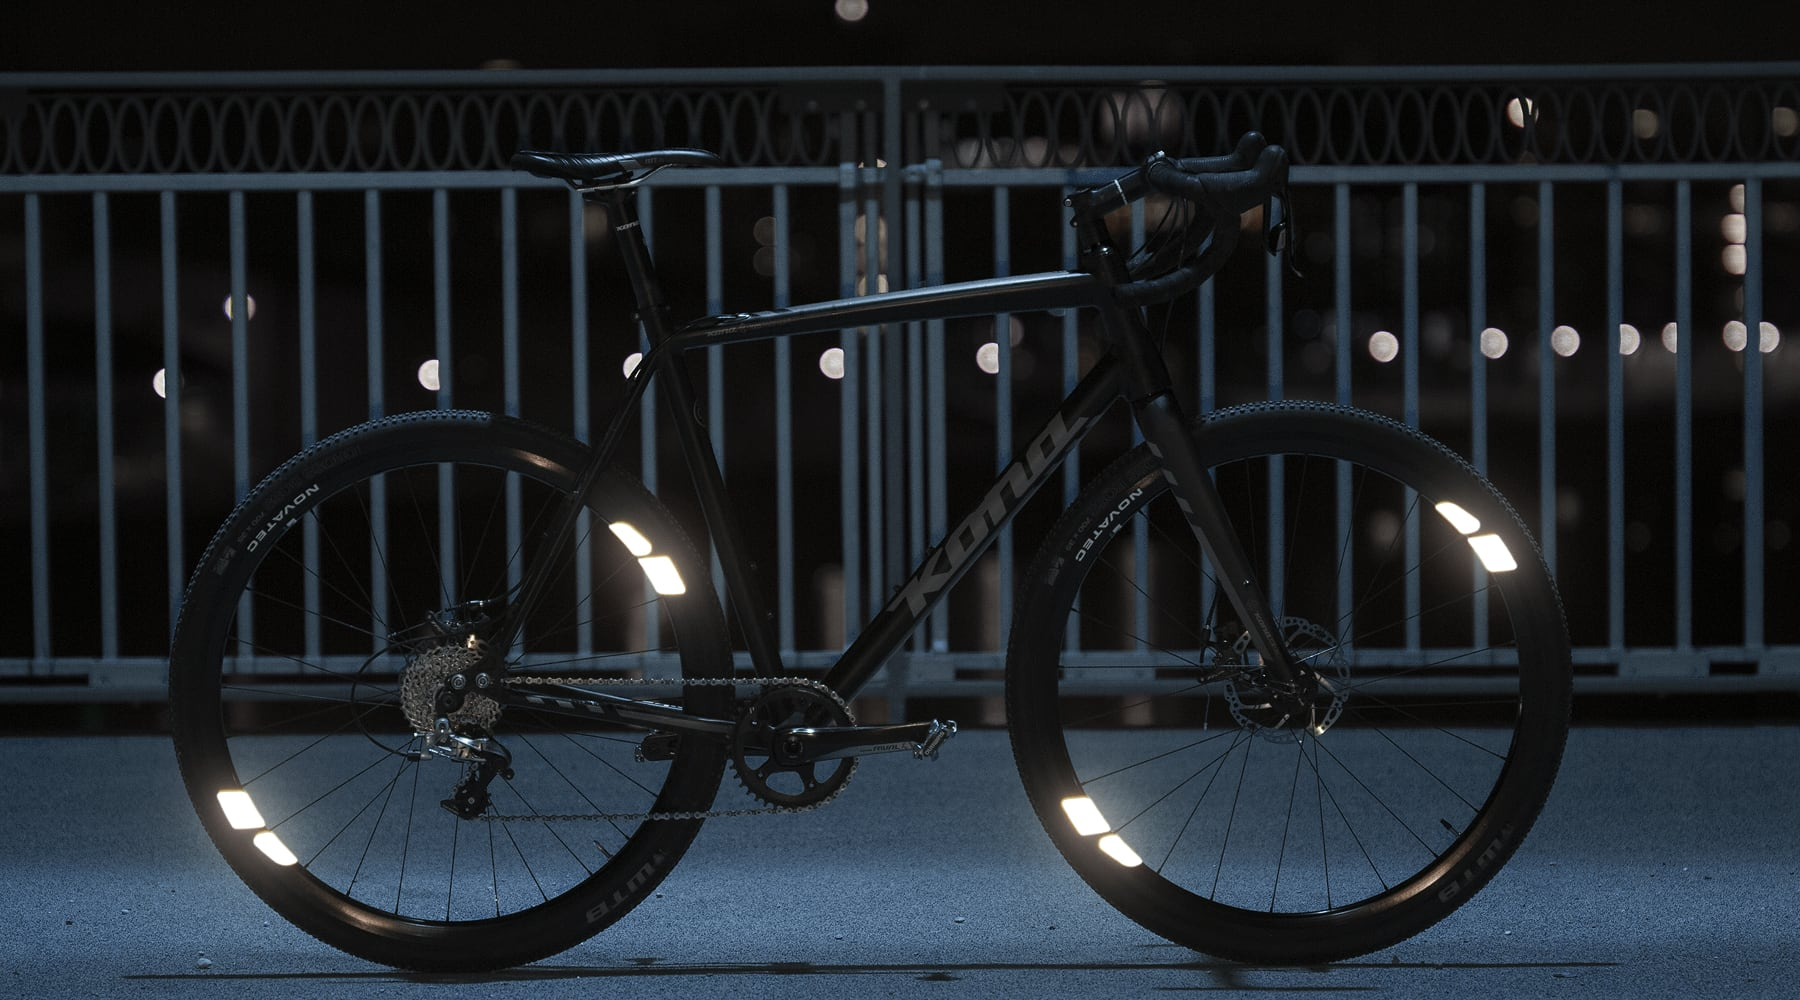 Flectr 360 OMNI bicycle reflectors - a reflective bike with high visibility and style